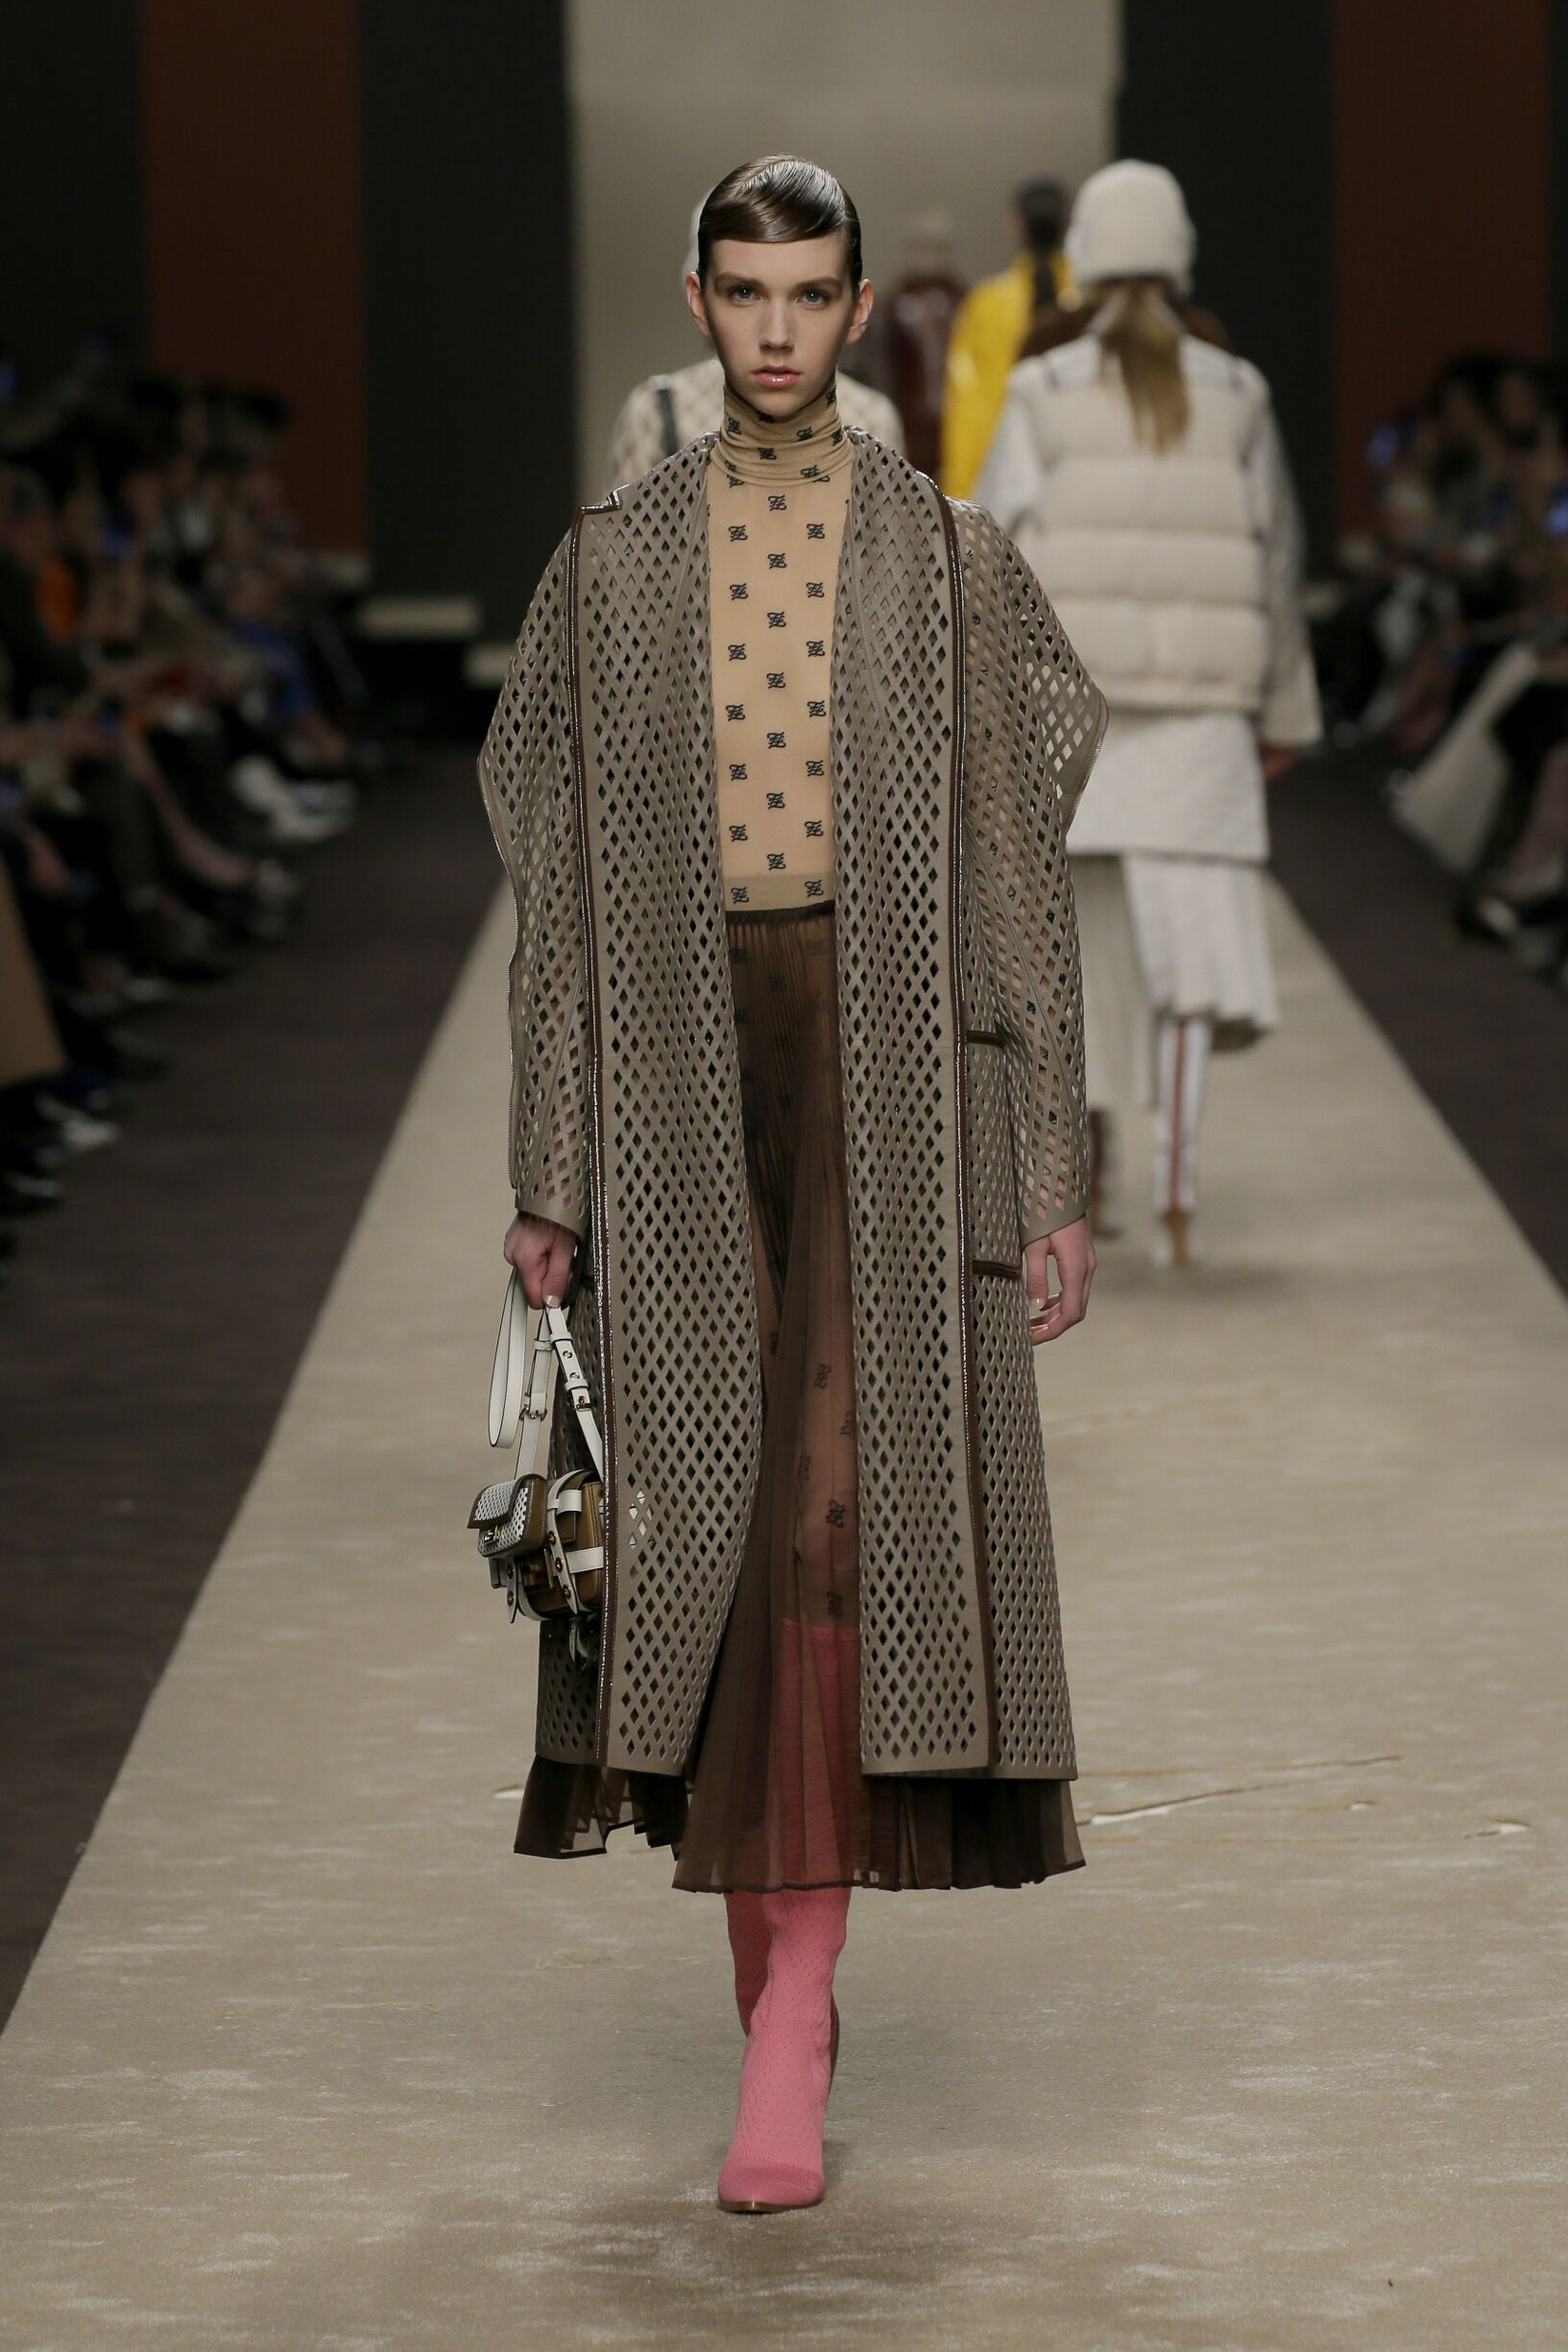 Fendi Womenswear Fashion Show